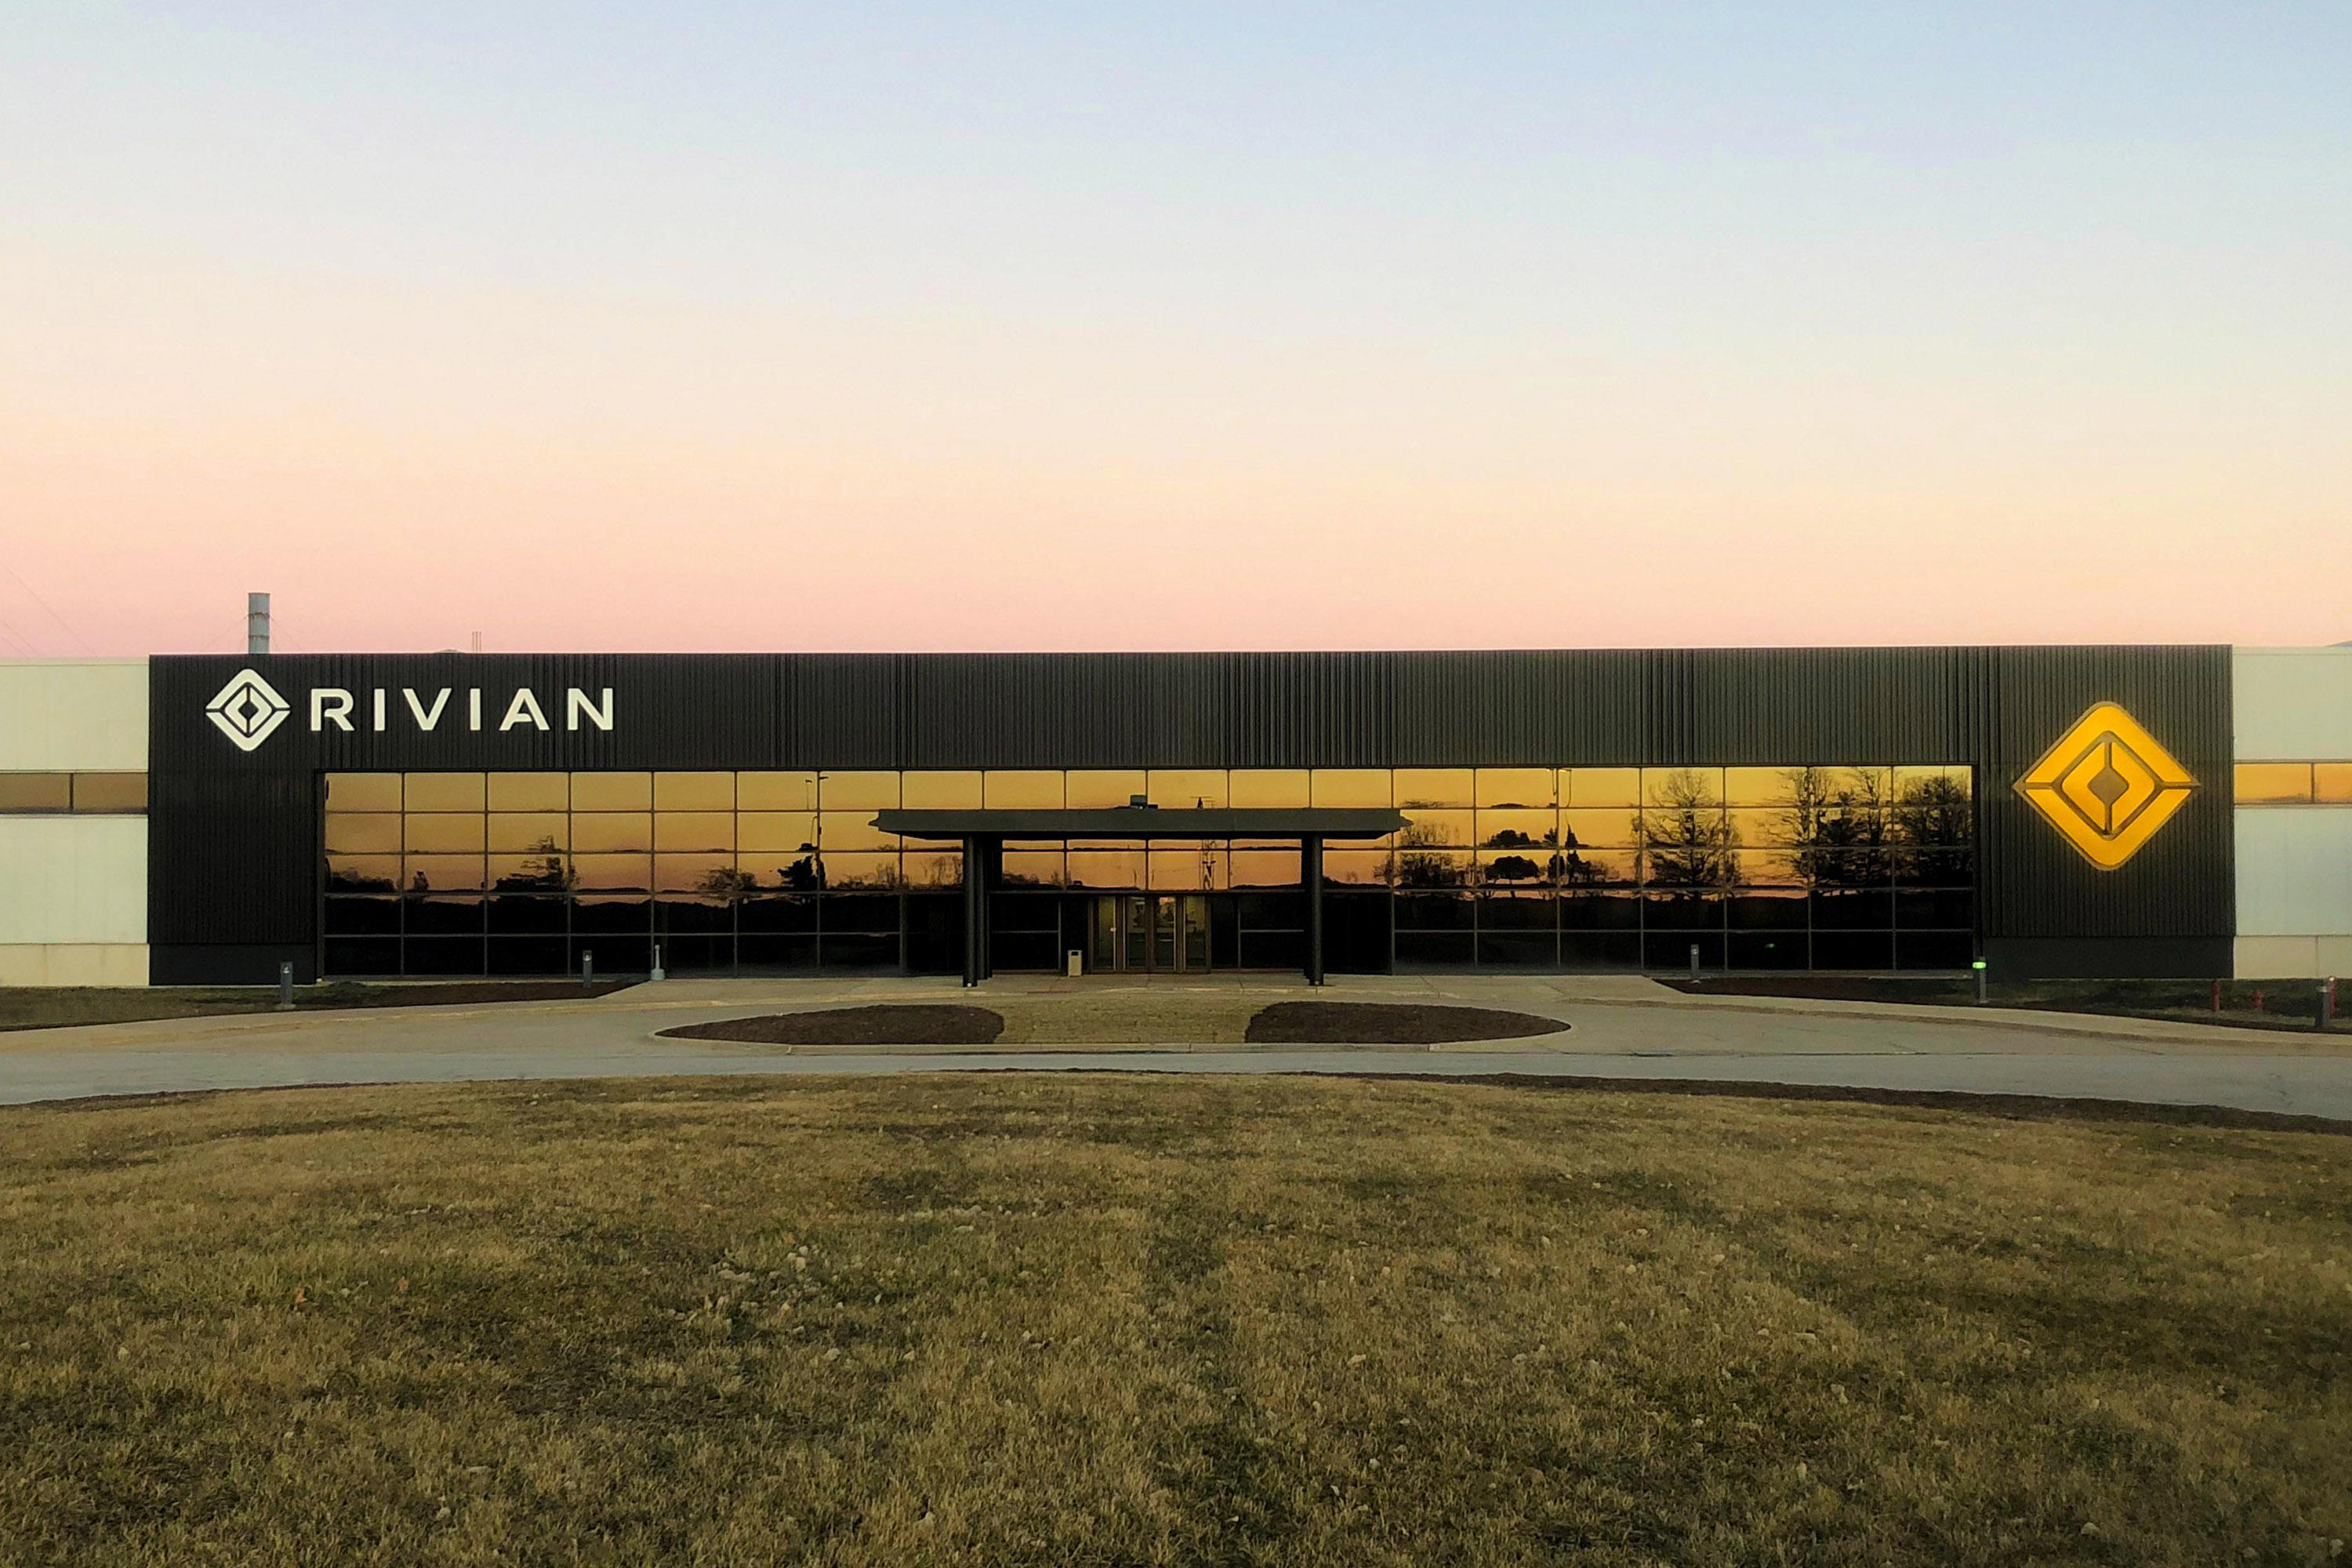 Rivian manufacturing facility in Normal, Illinois